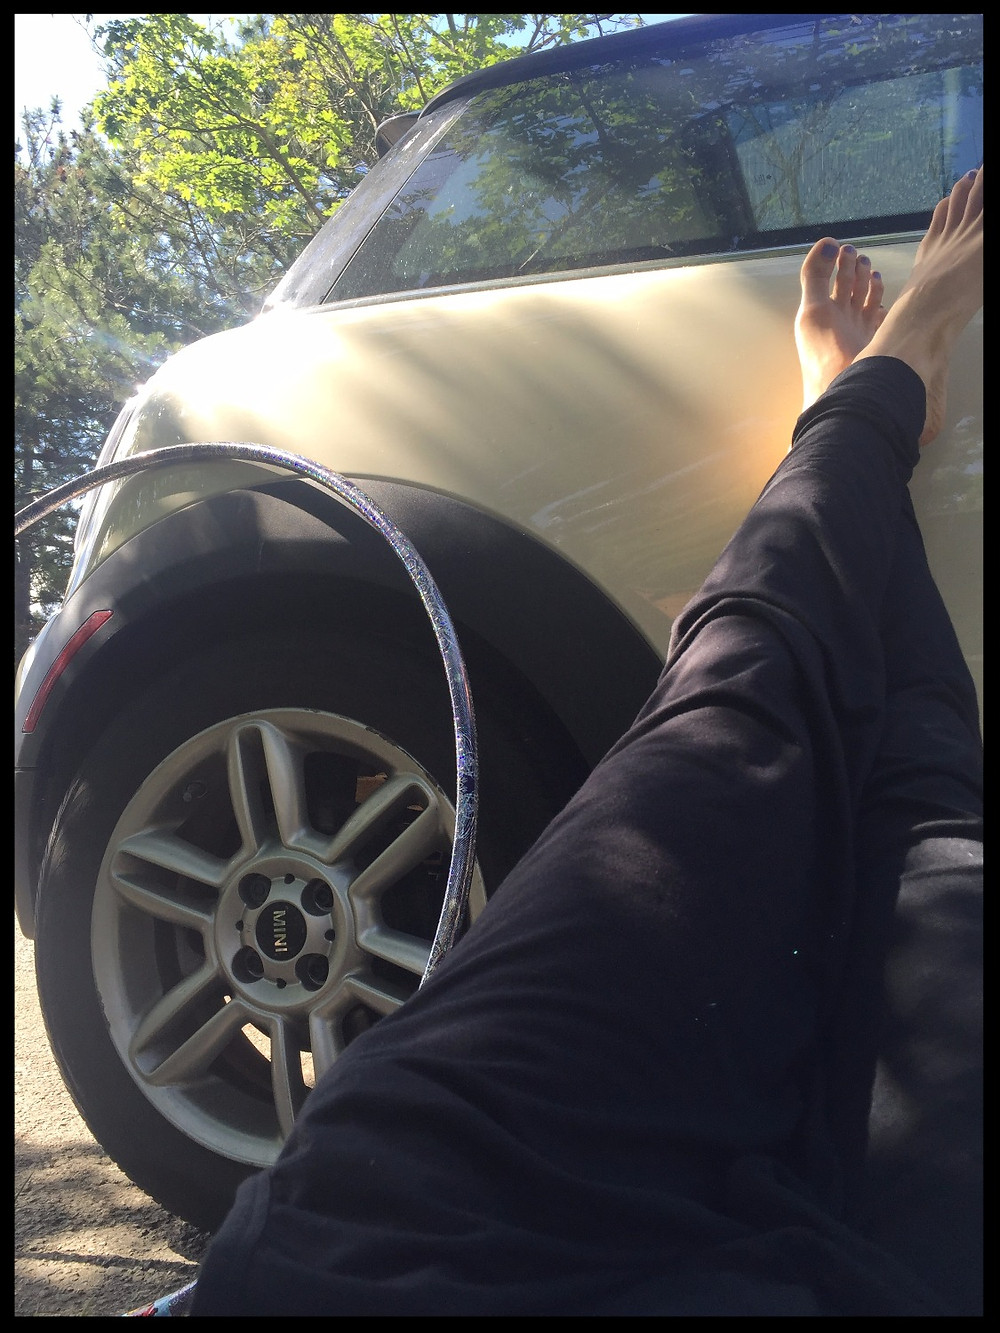 My body loves a good car panic...so sometimes I have to chill outside.